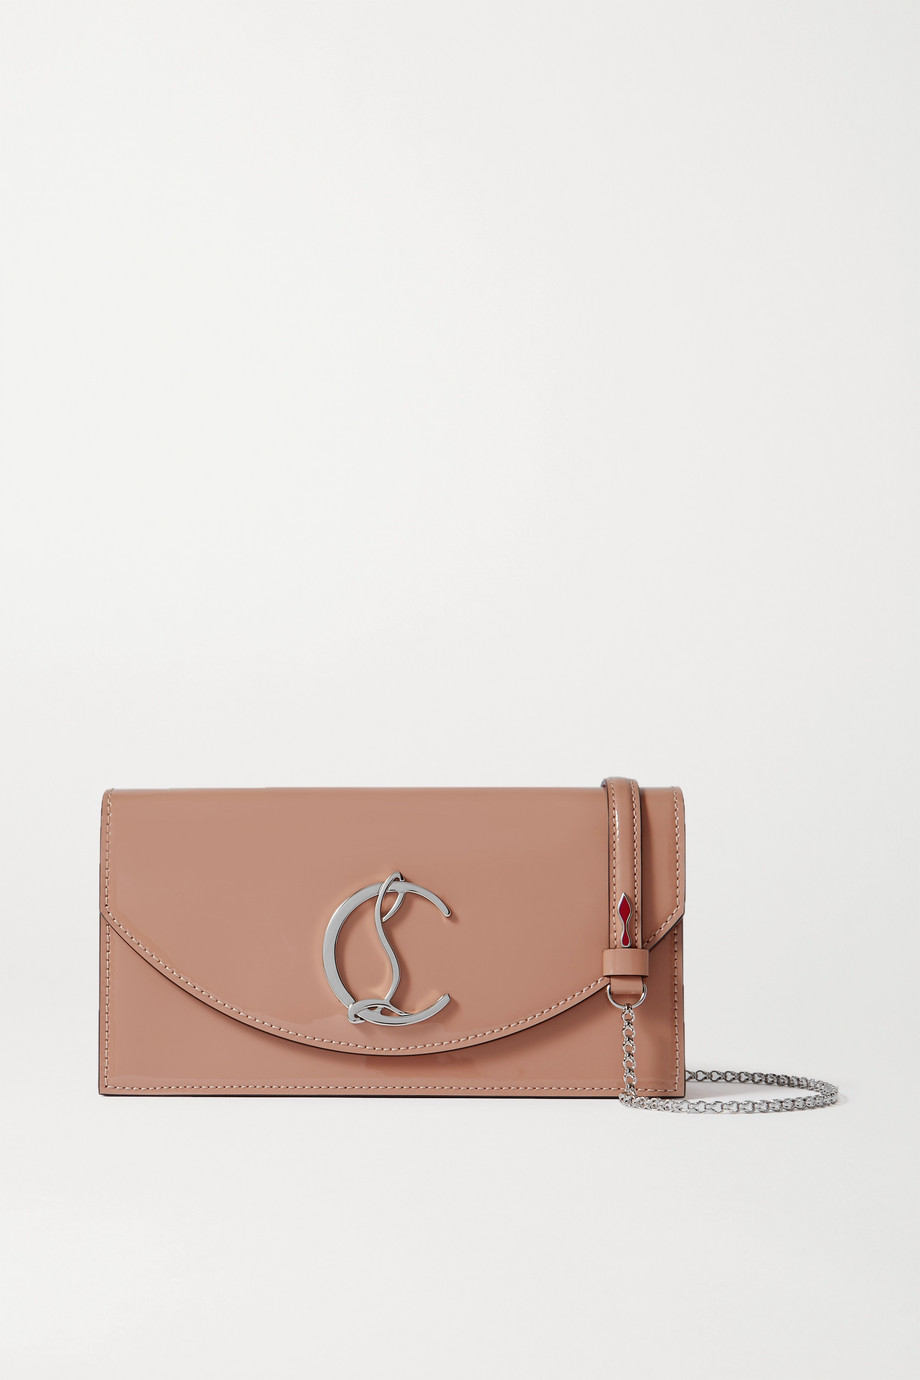 Christian Louboutin Loubi54 patent-leather clutch